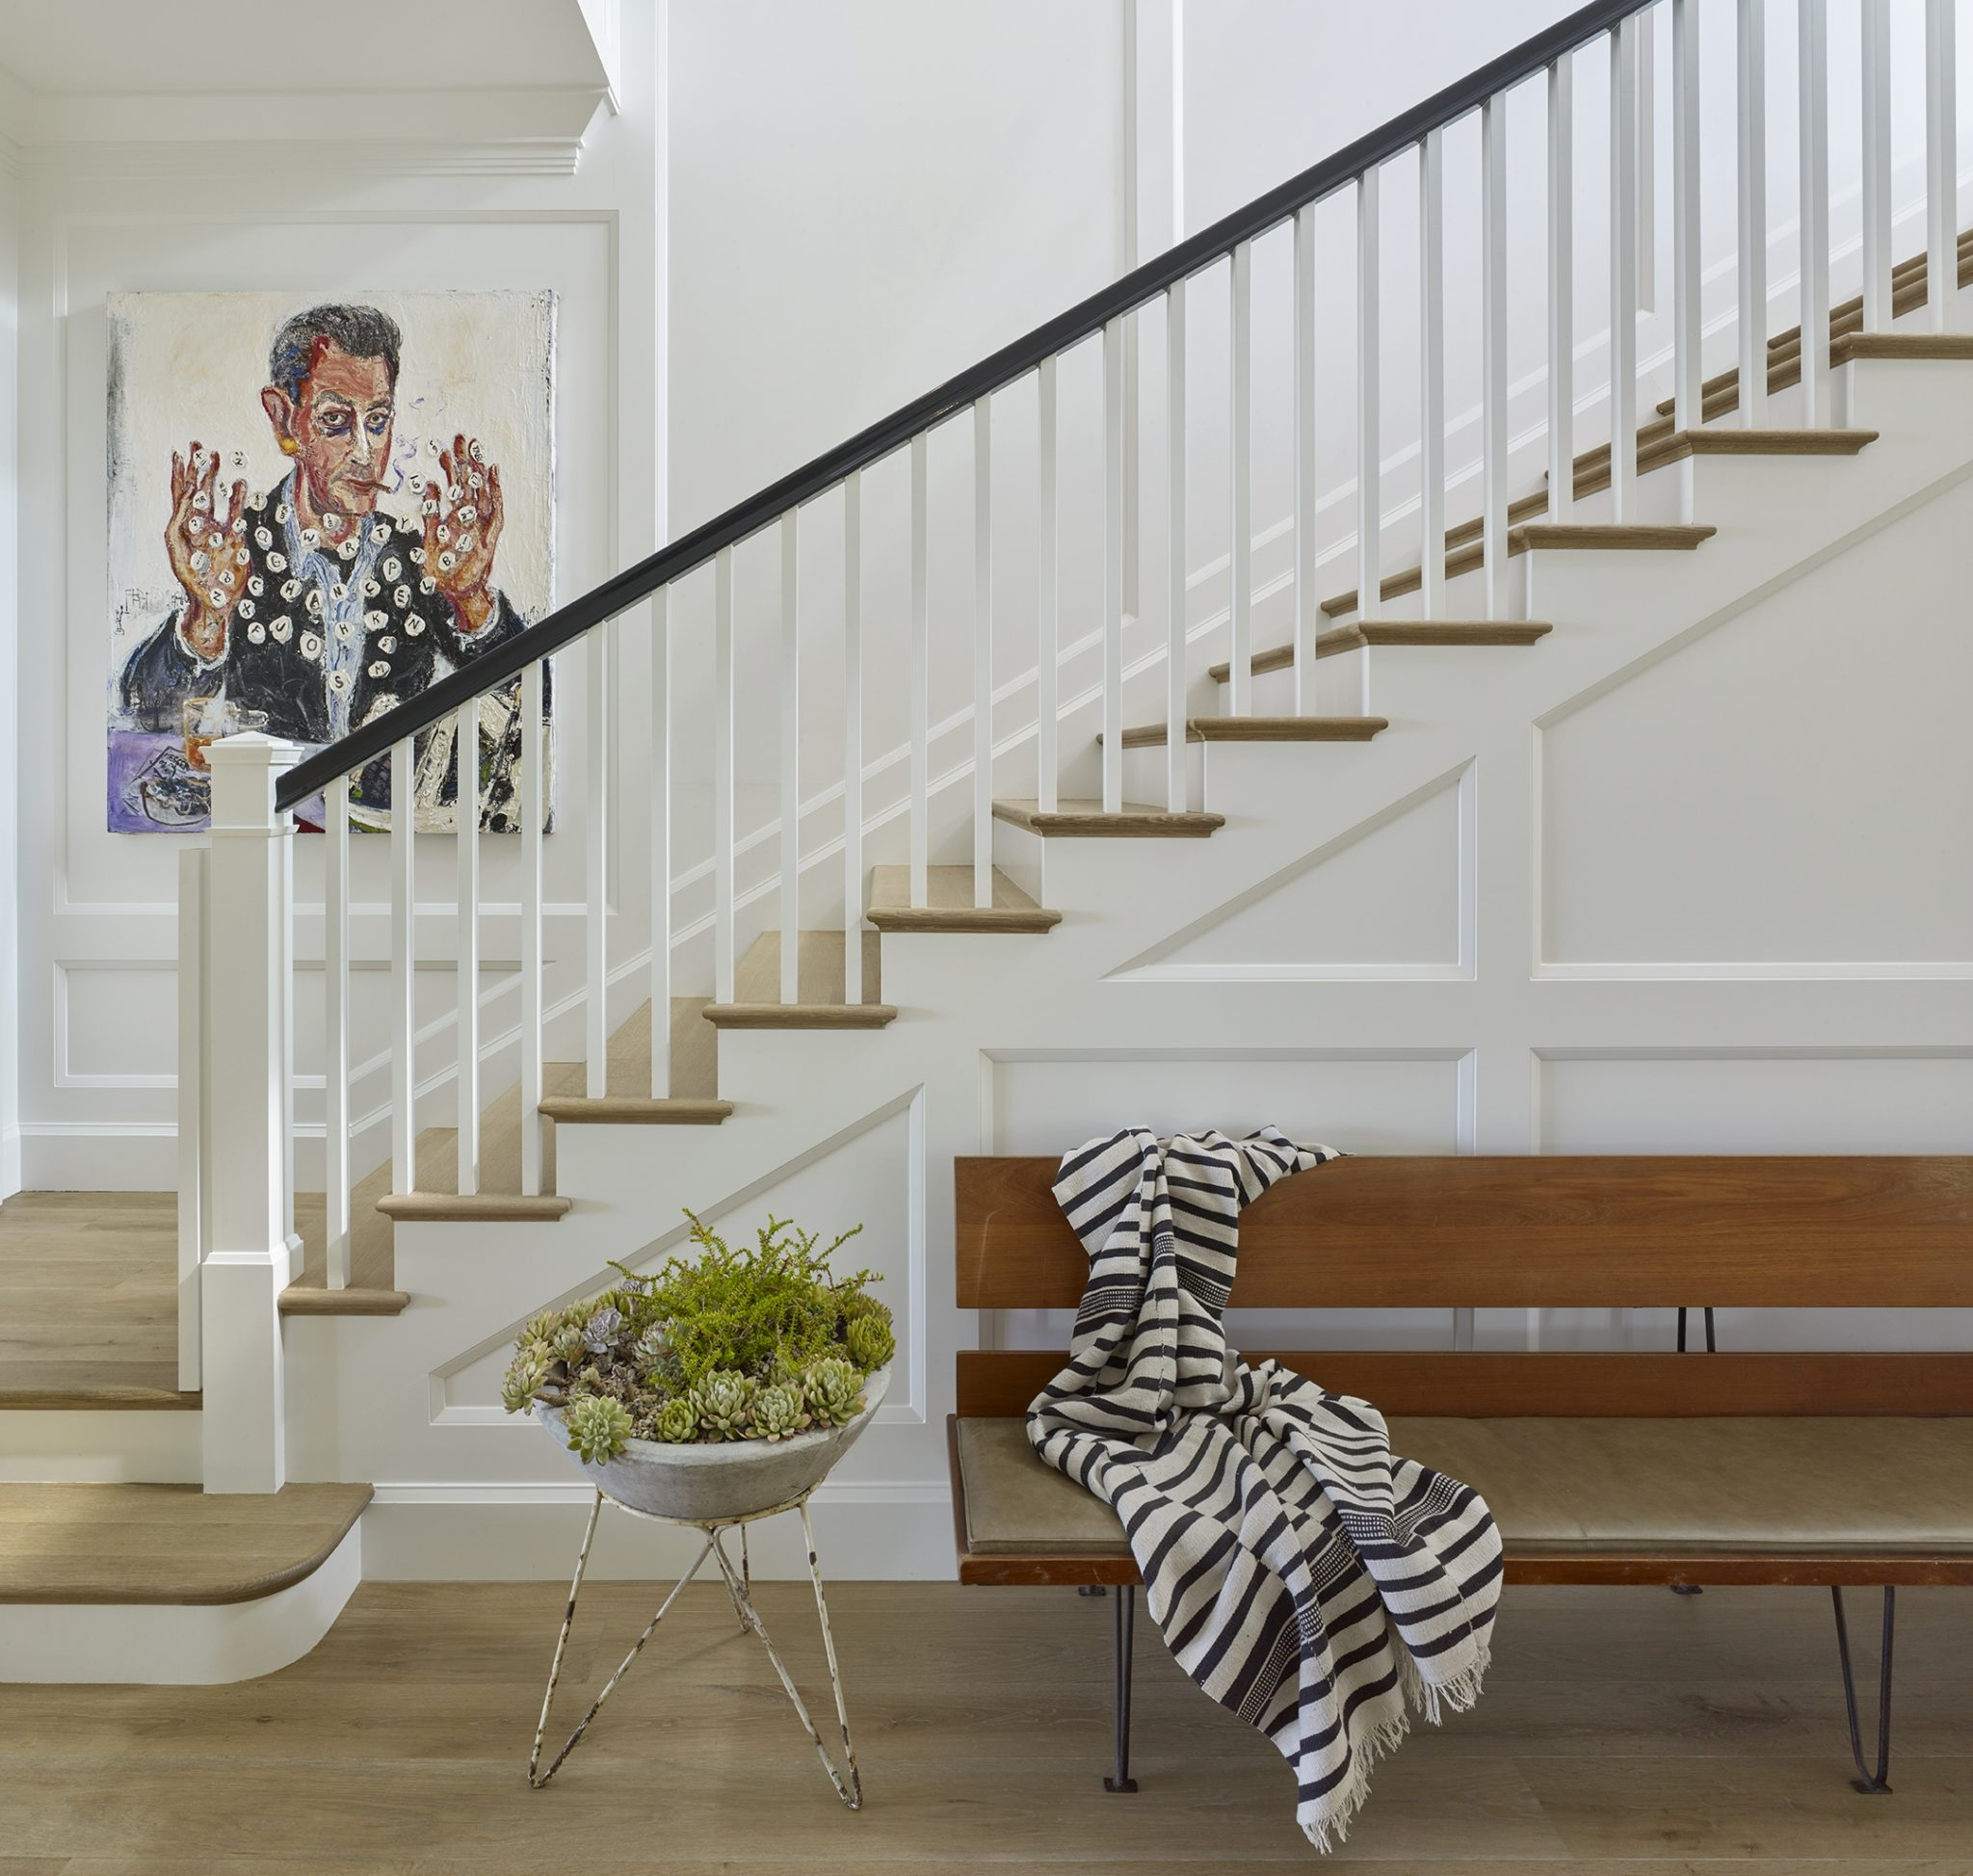 35 Stairwell Decorating Ideas Chairish Blog | Pacific Stairs And Railings | Architecture | Wire Mesh | Cad | Casey Brown | Modern Staircase